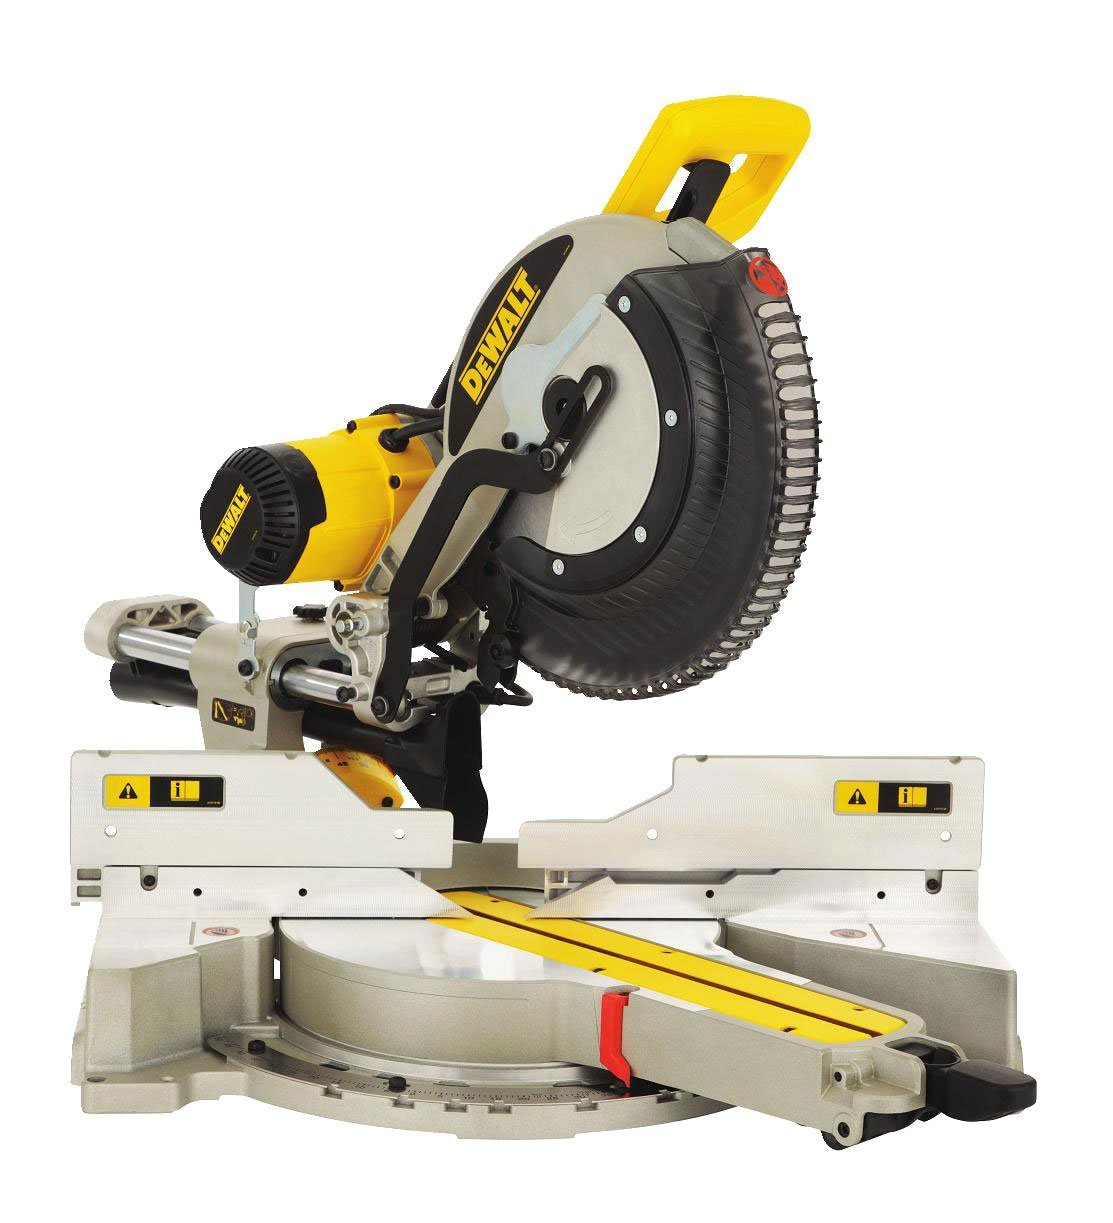 Dewalt DWS780 Sliding Miter Saw Review